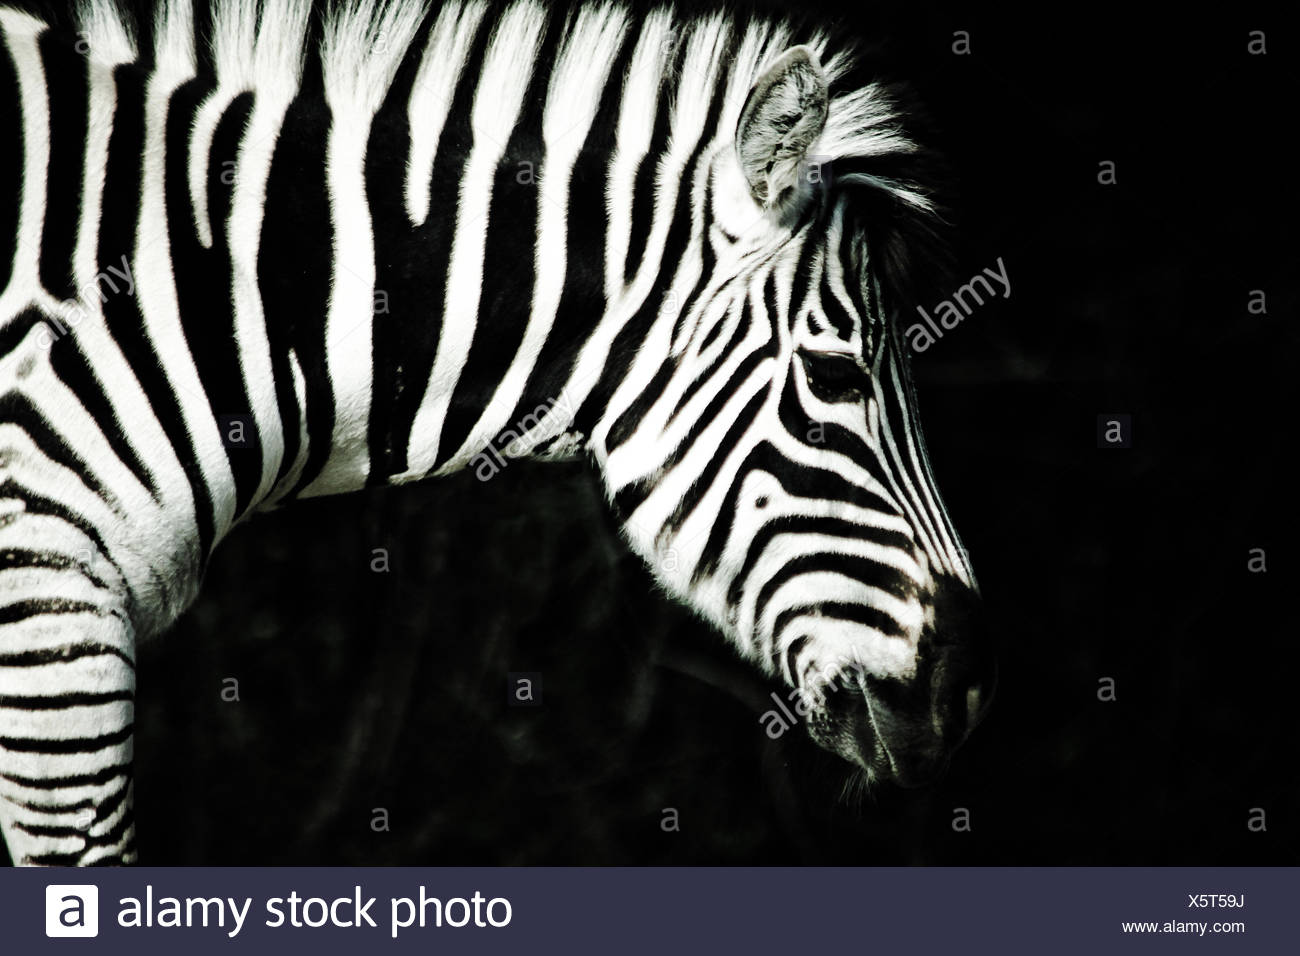 Close-Up Of Zebra In Forest At Night - Stock Image